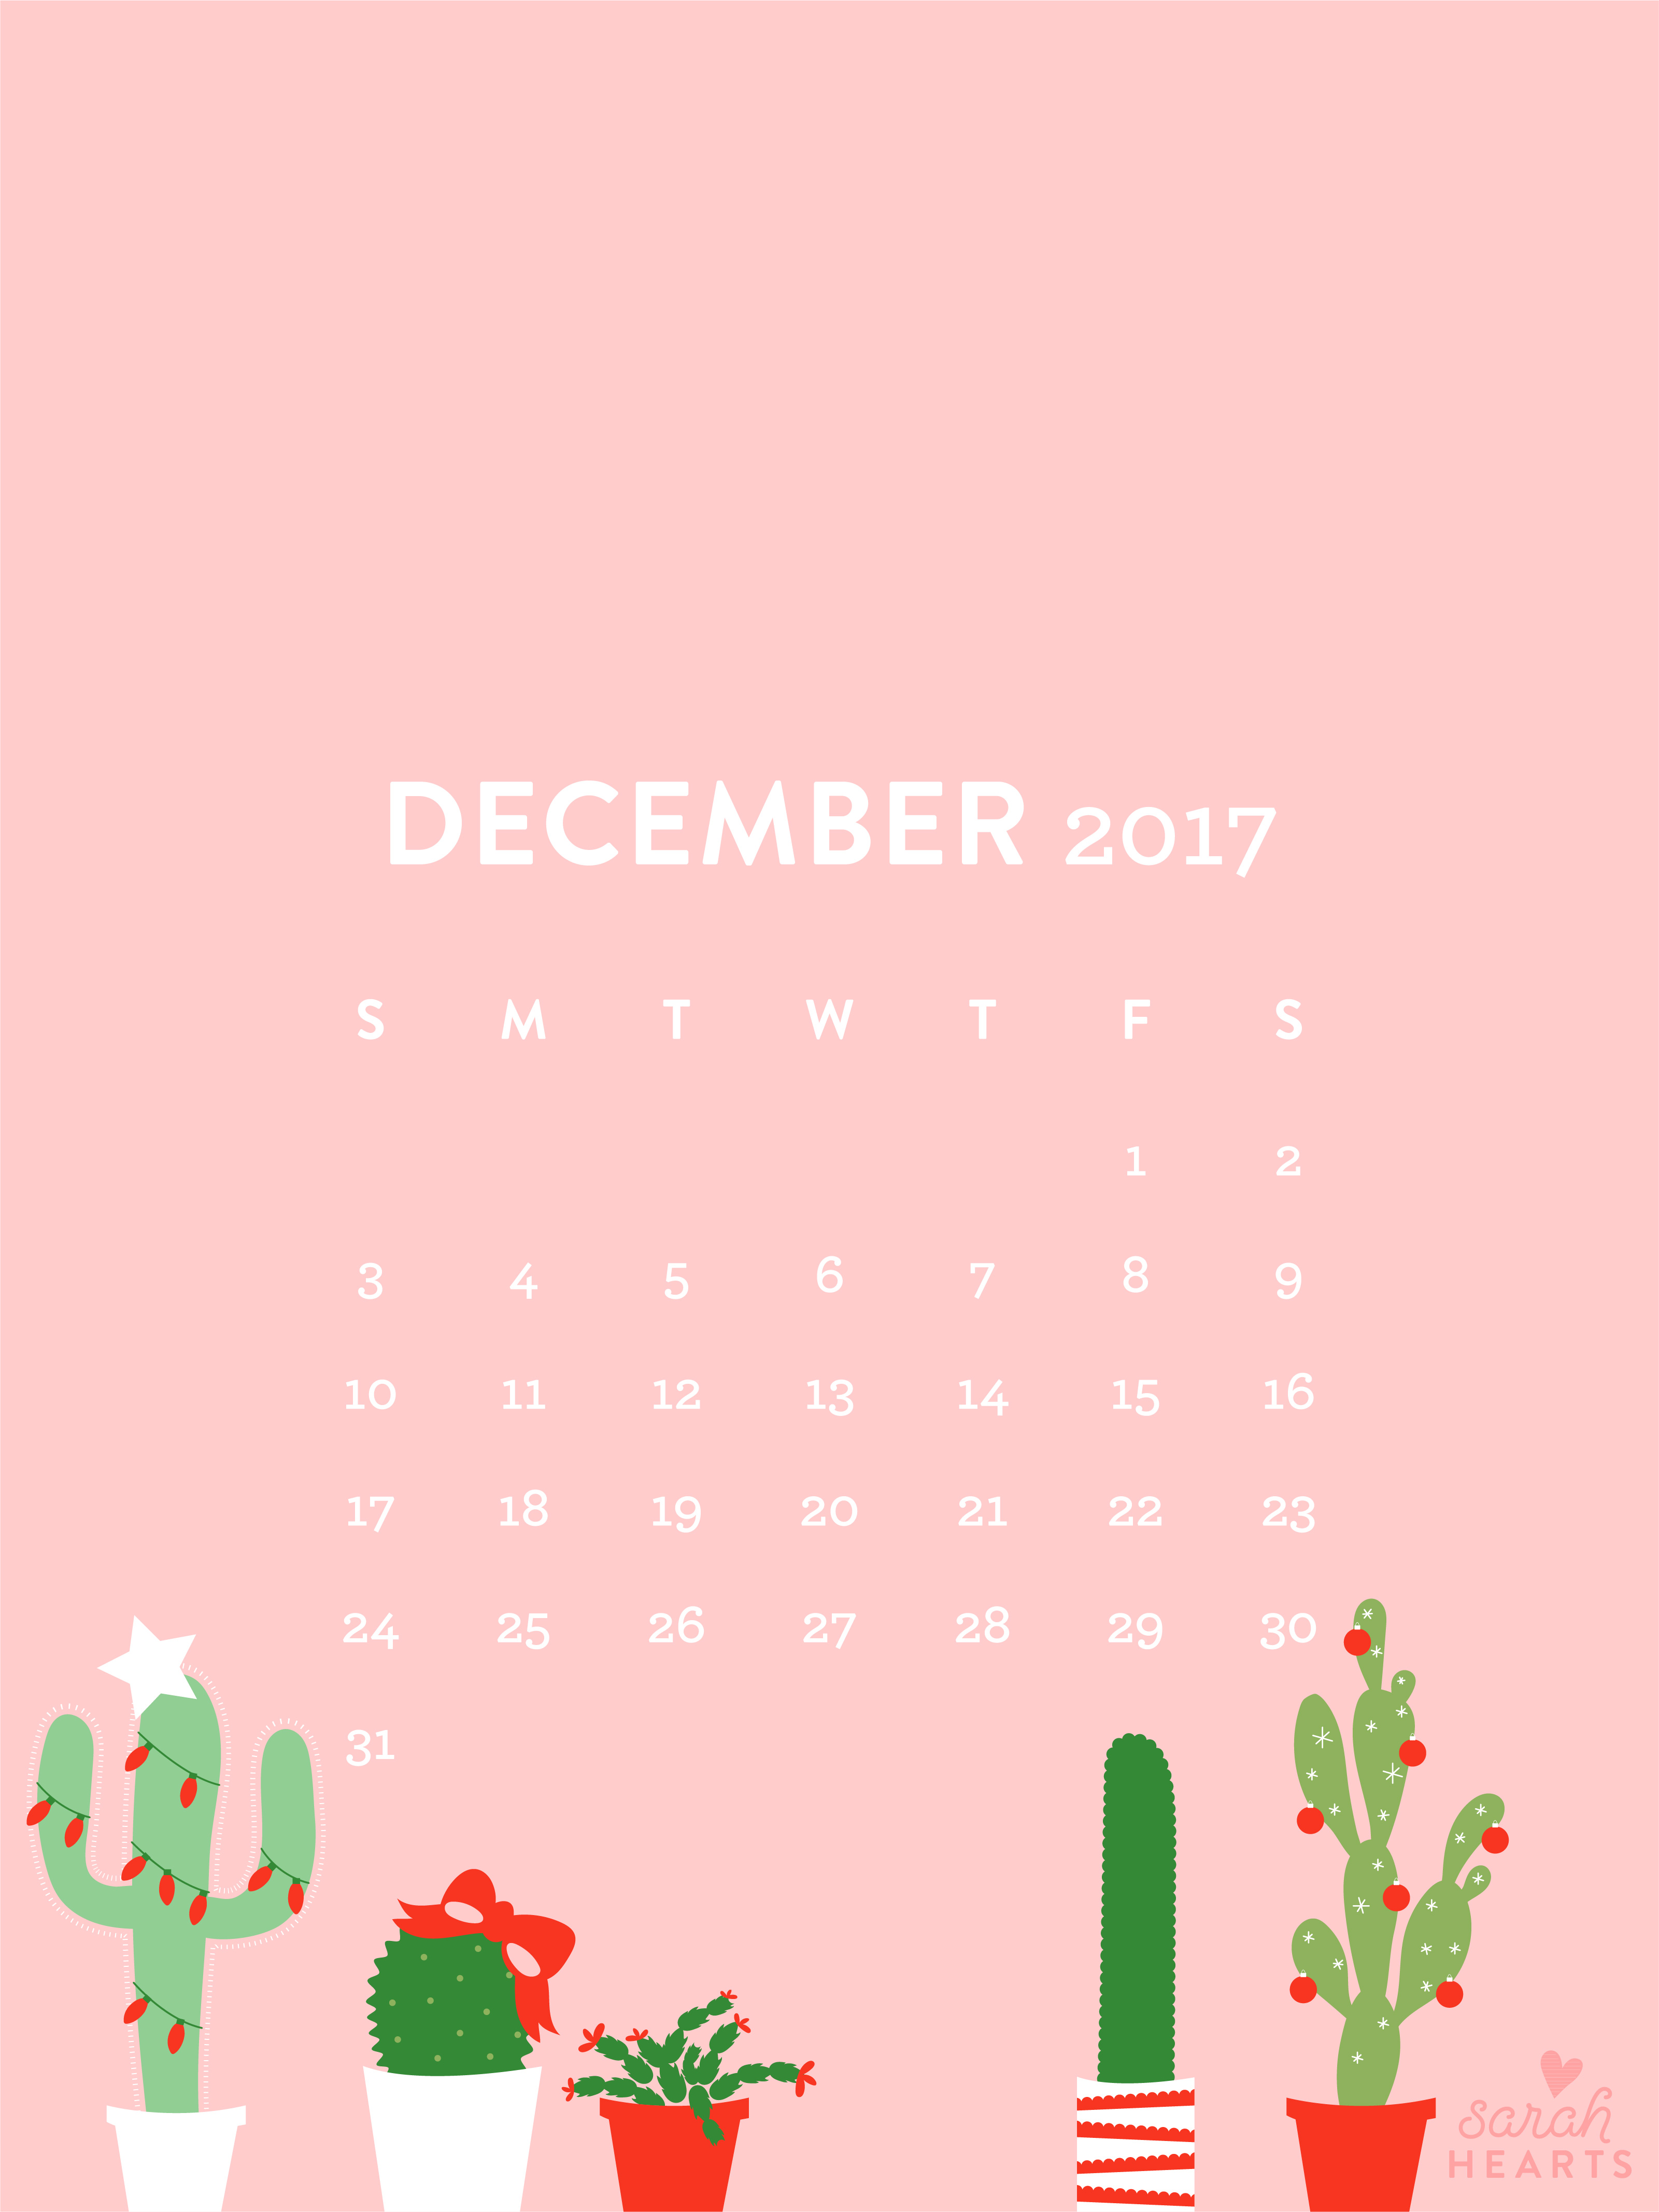 12 2017 wallpaper ipad calendar